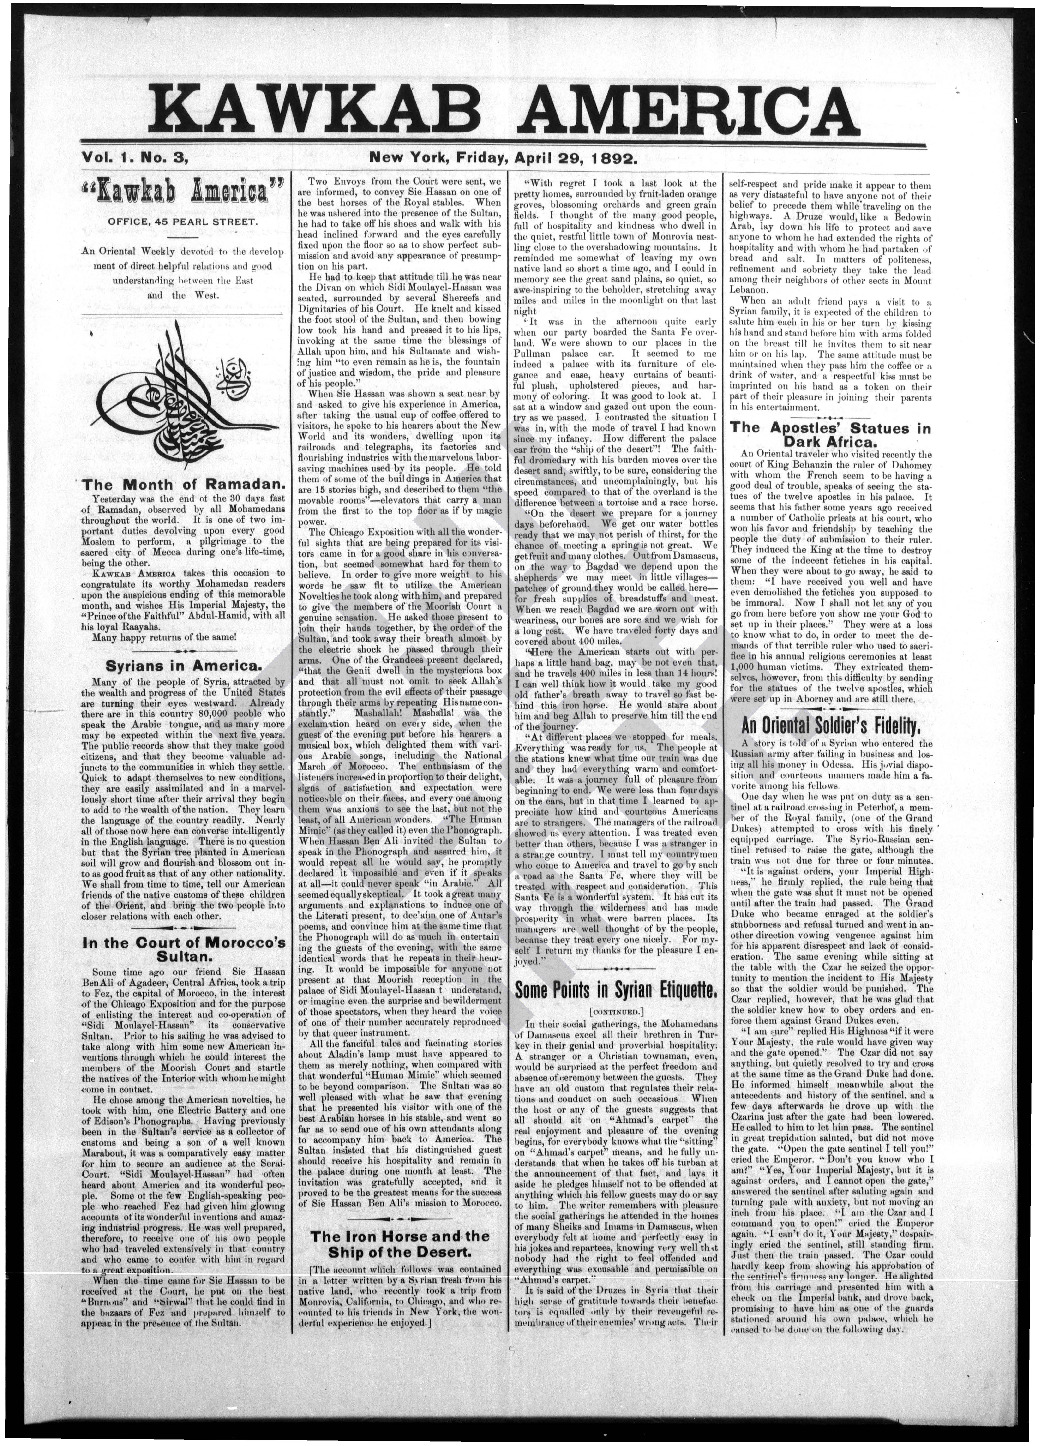 kawkab america_vol 1 no 3_apr 29 1892_full_wm.pdf